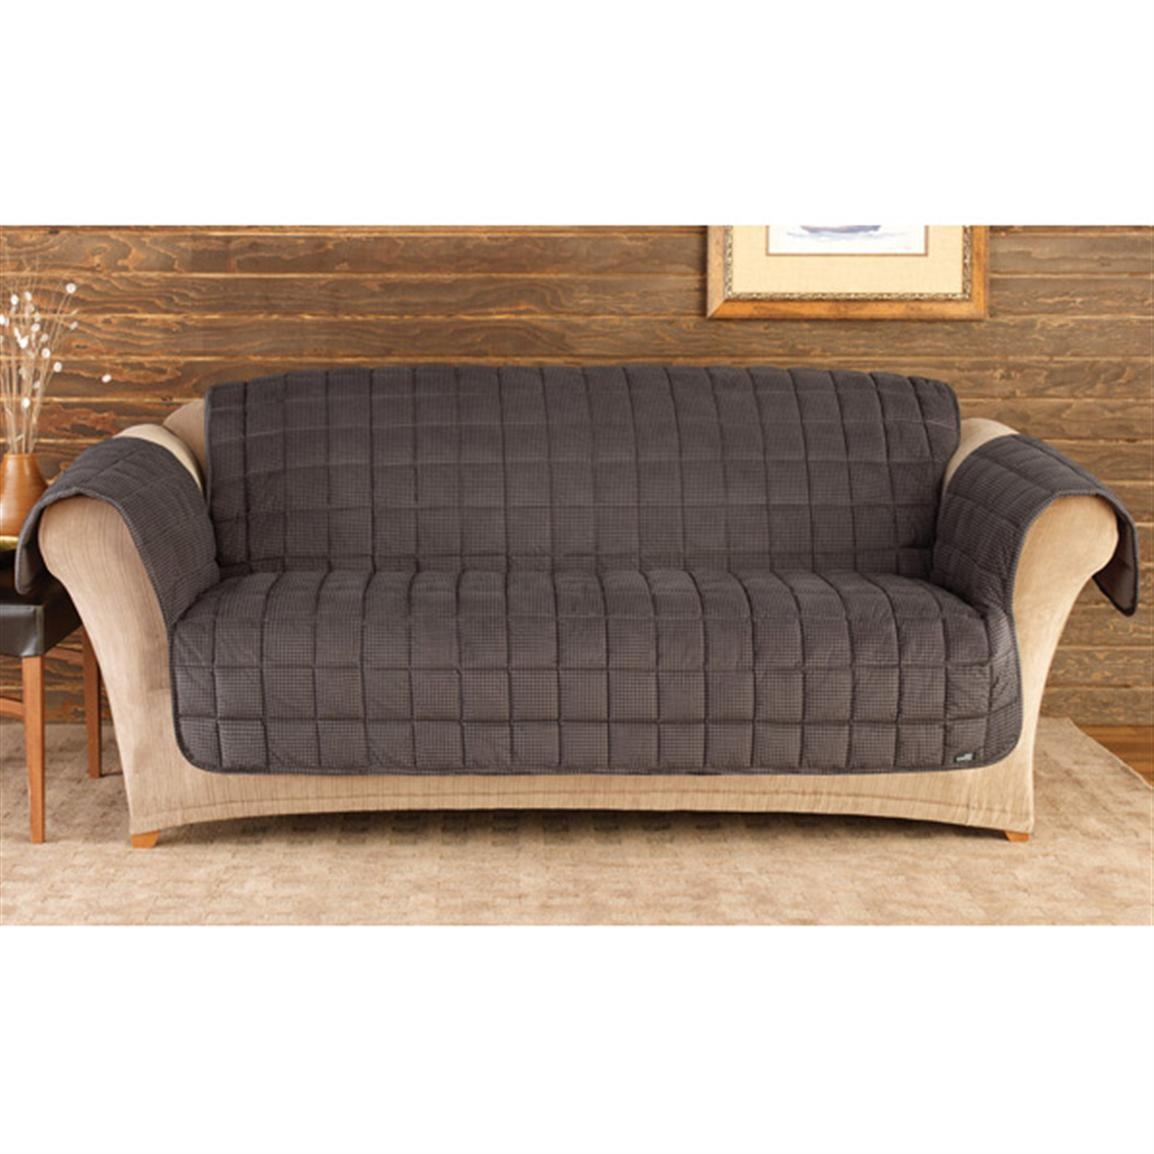 Sure Fit Deluxe Velvet Mini Check Sofa Pet Cover, Black And Brown Throughout Sofas With Black Cover (View 12 of 20)